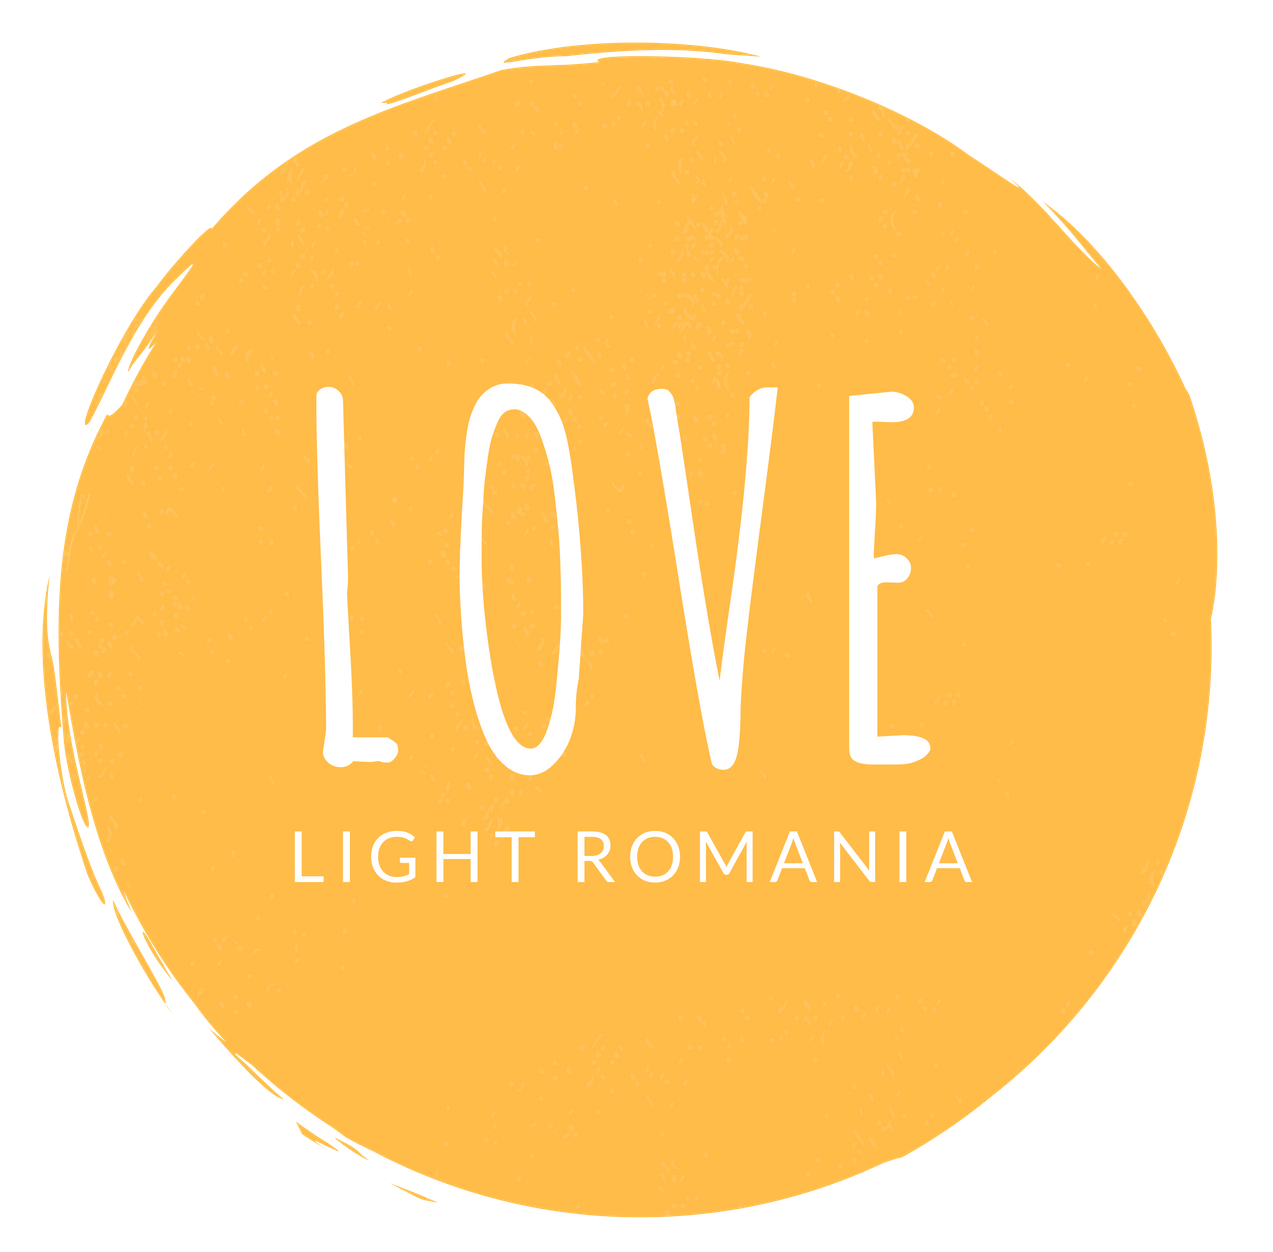 Love Light Romania logo